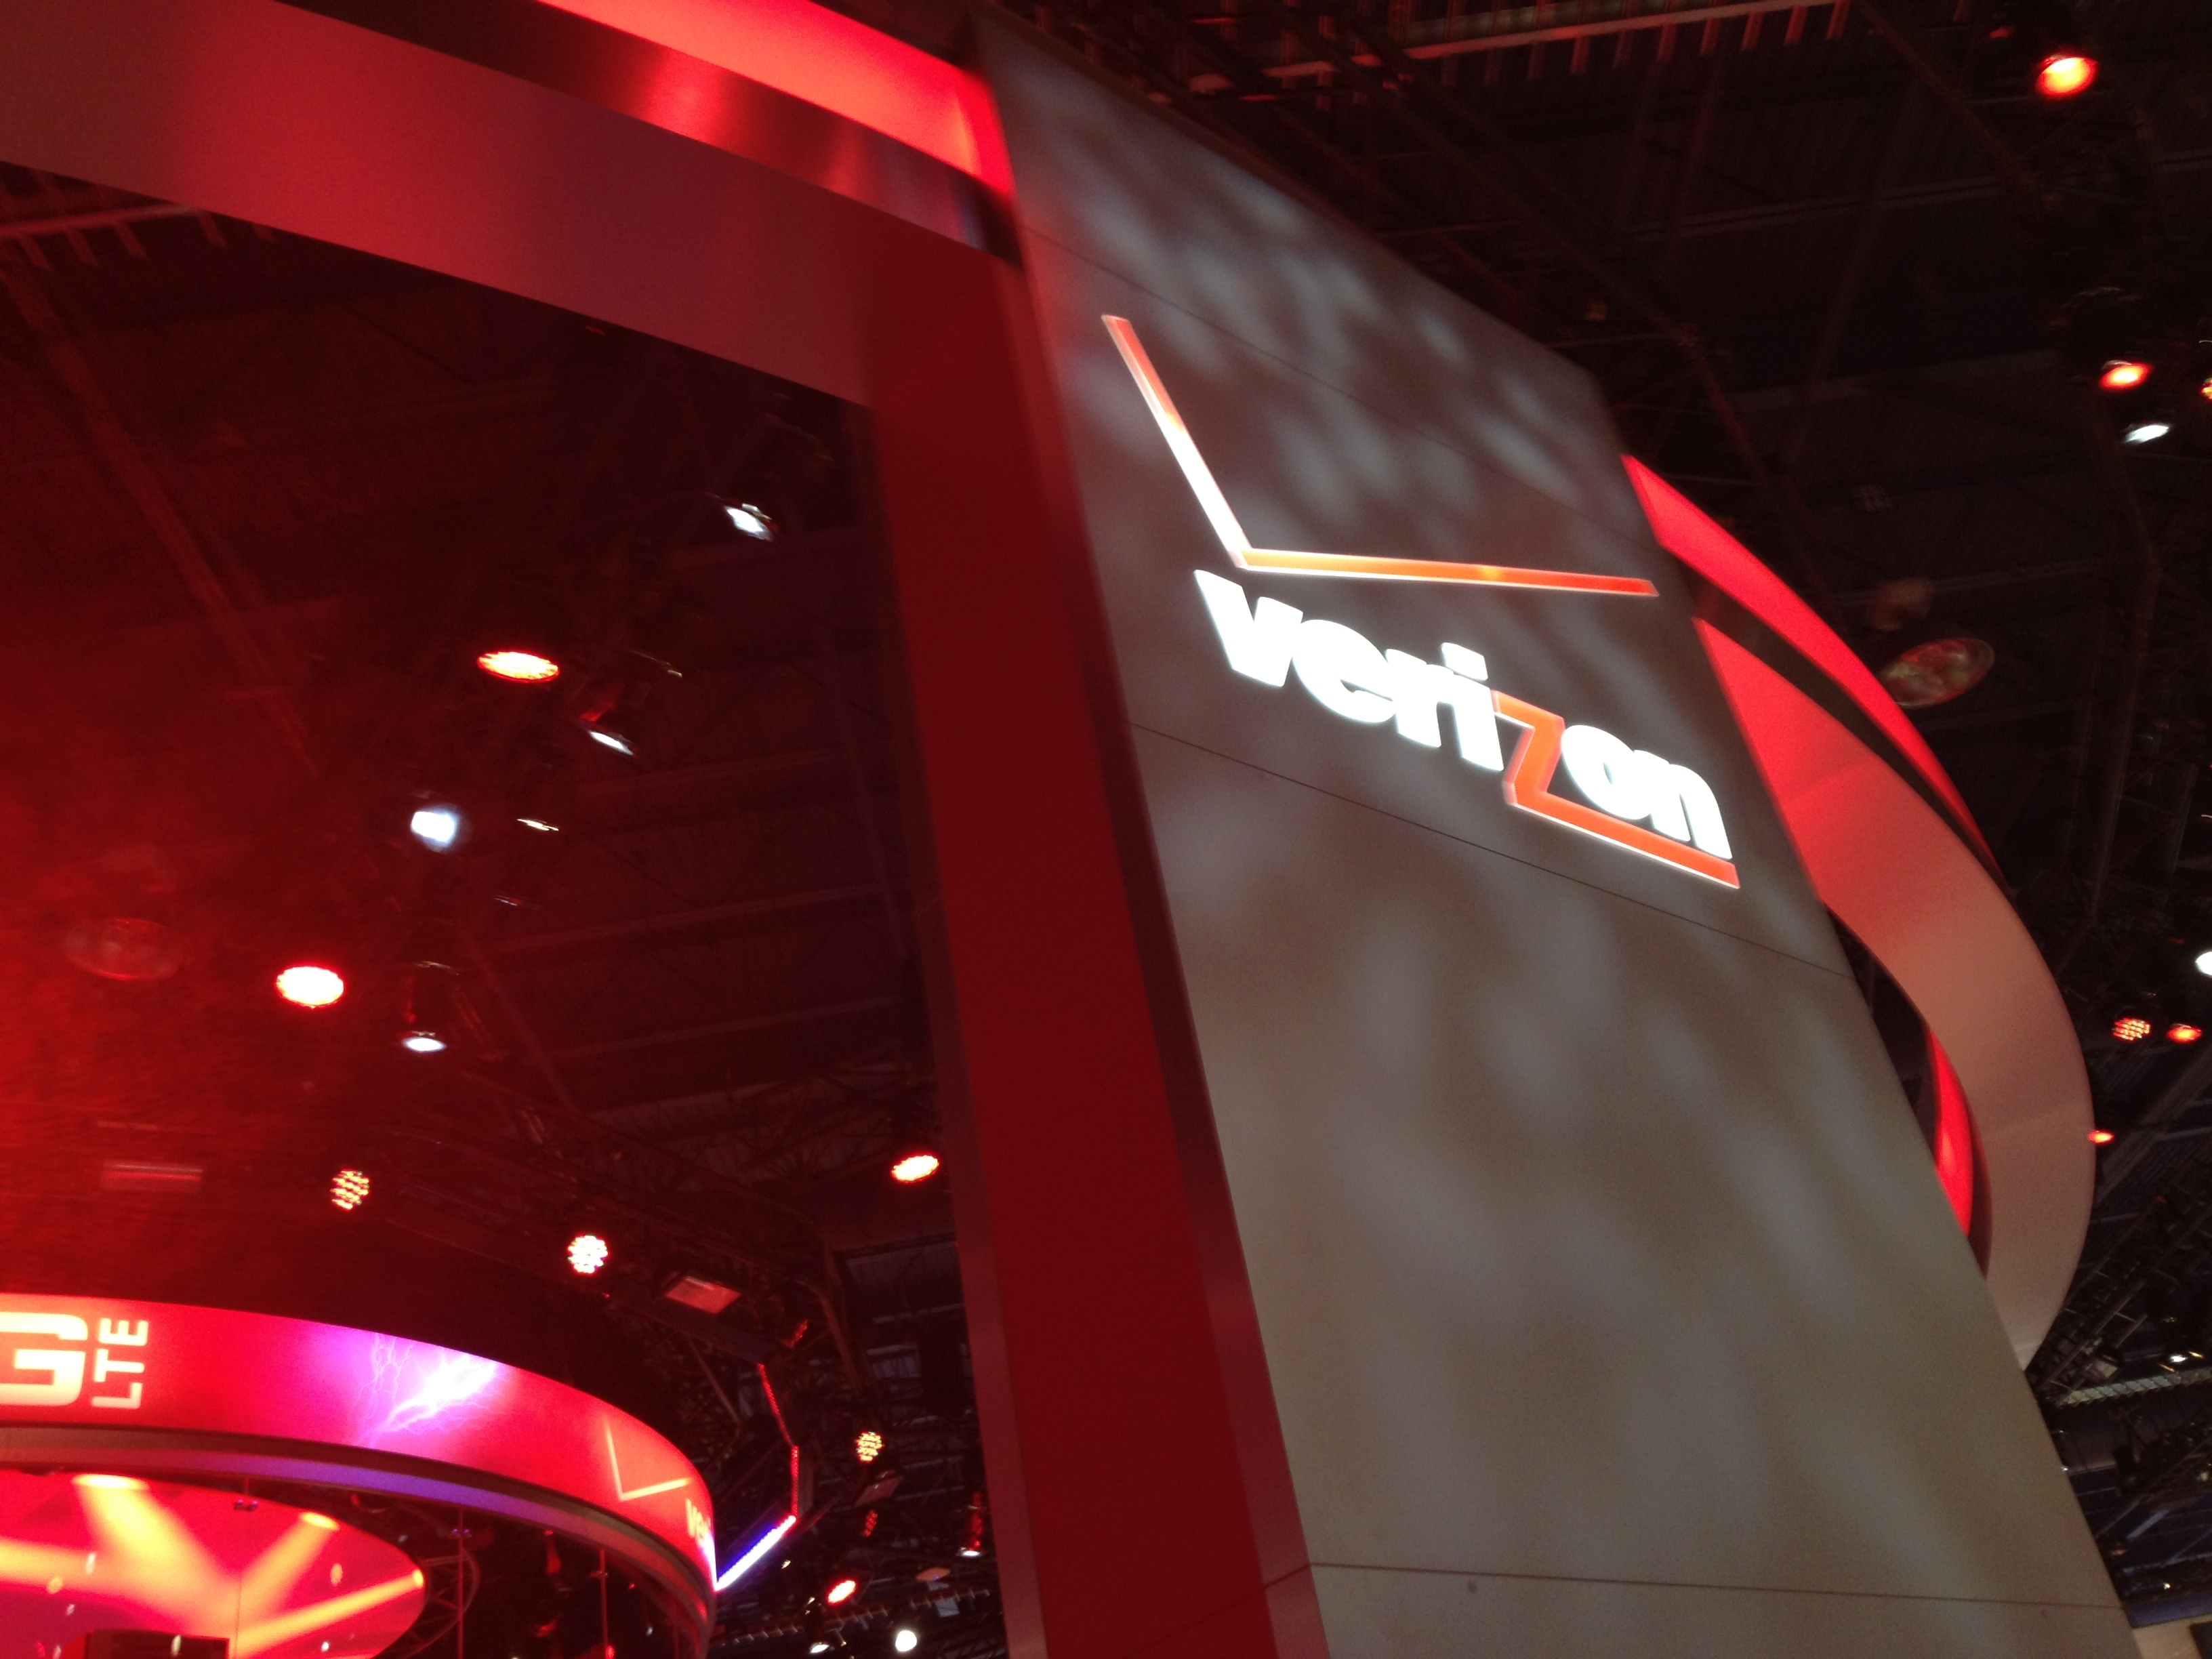 Verizon booth at CES 2012